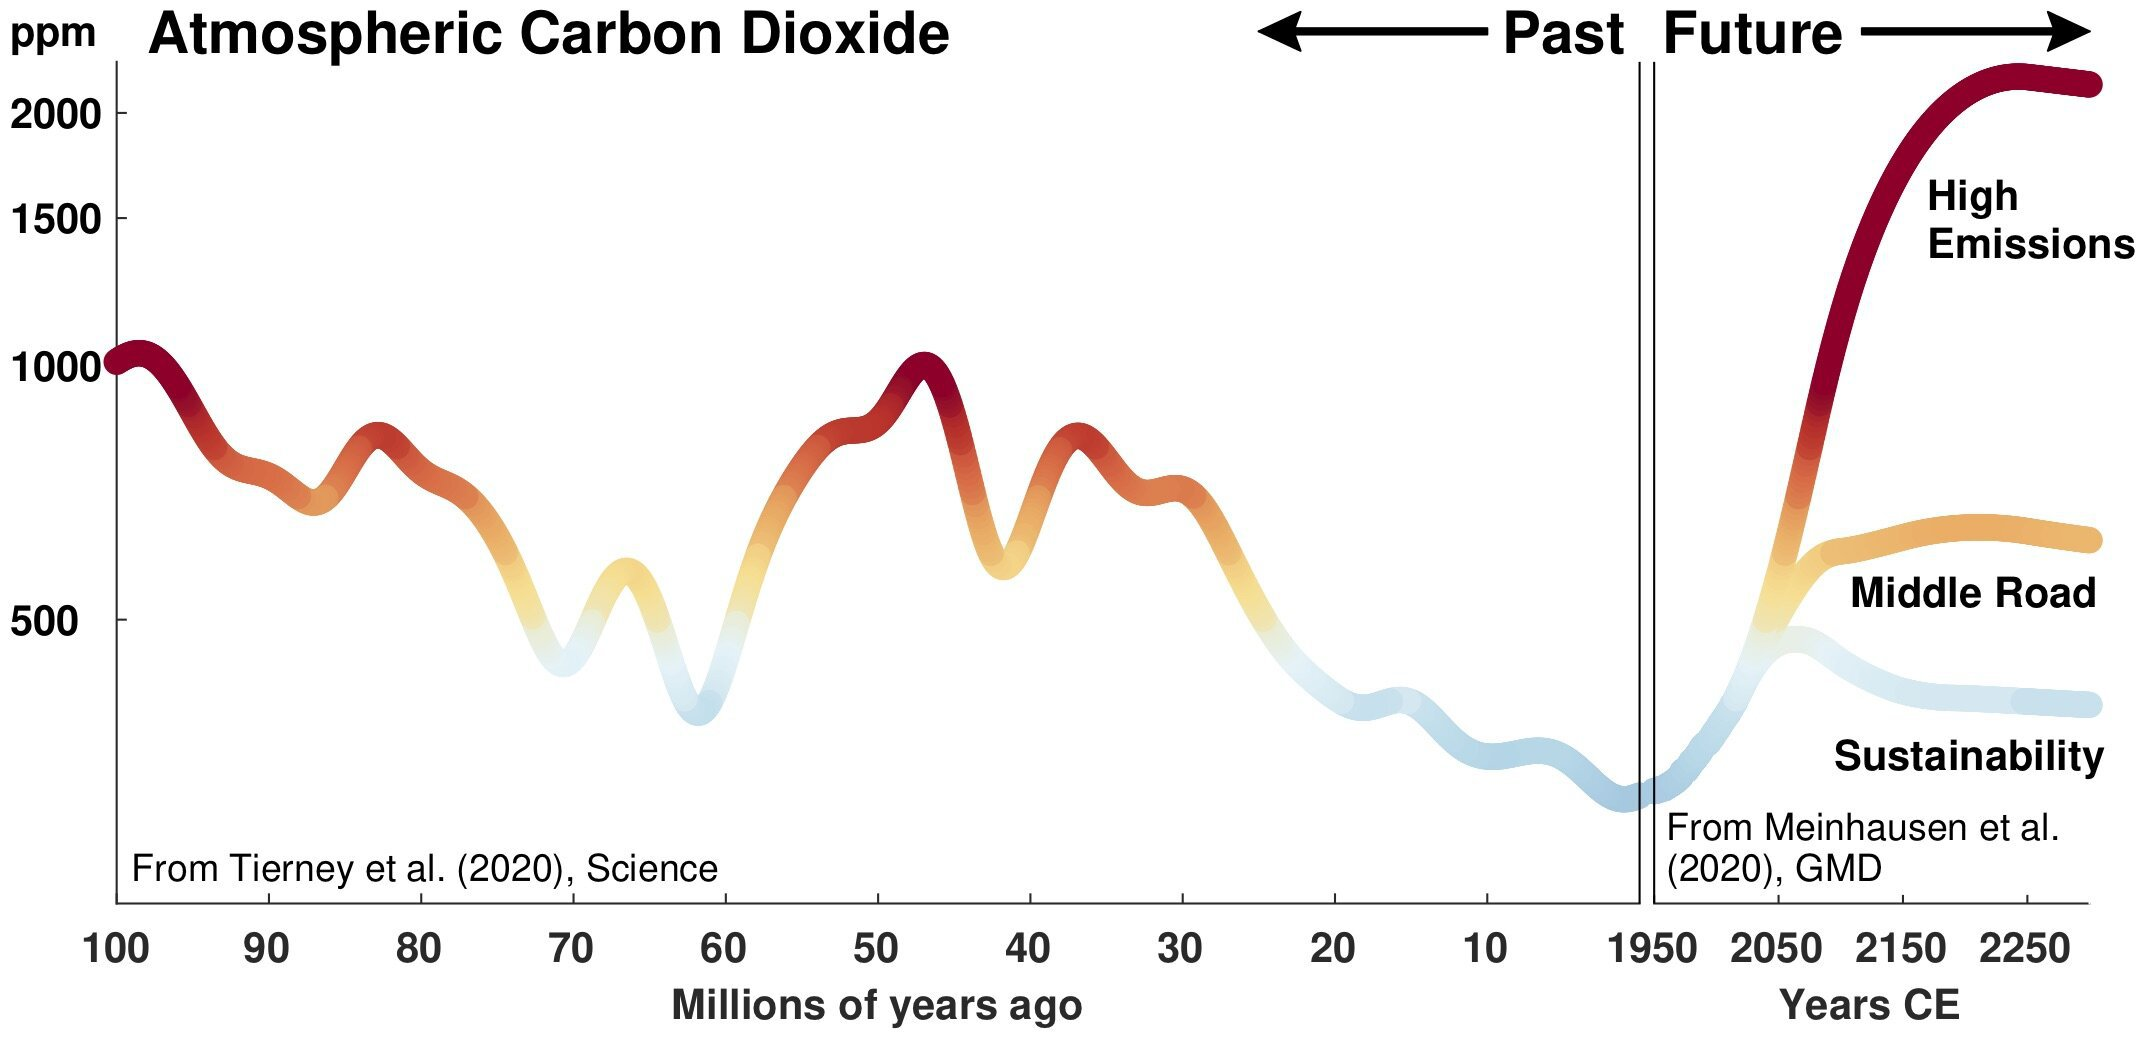 graph showing past and future carbon dioxide concentrations